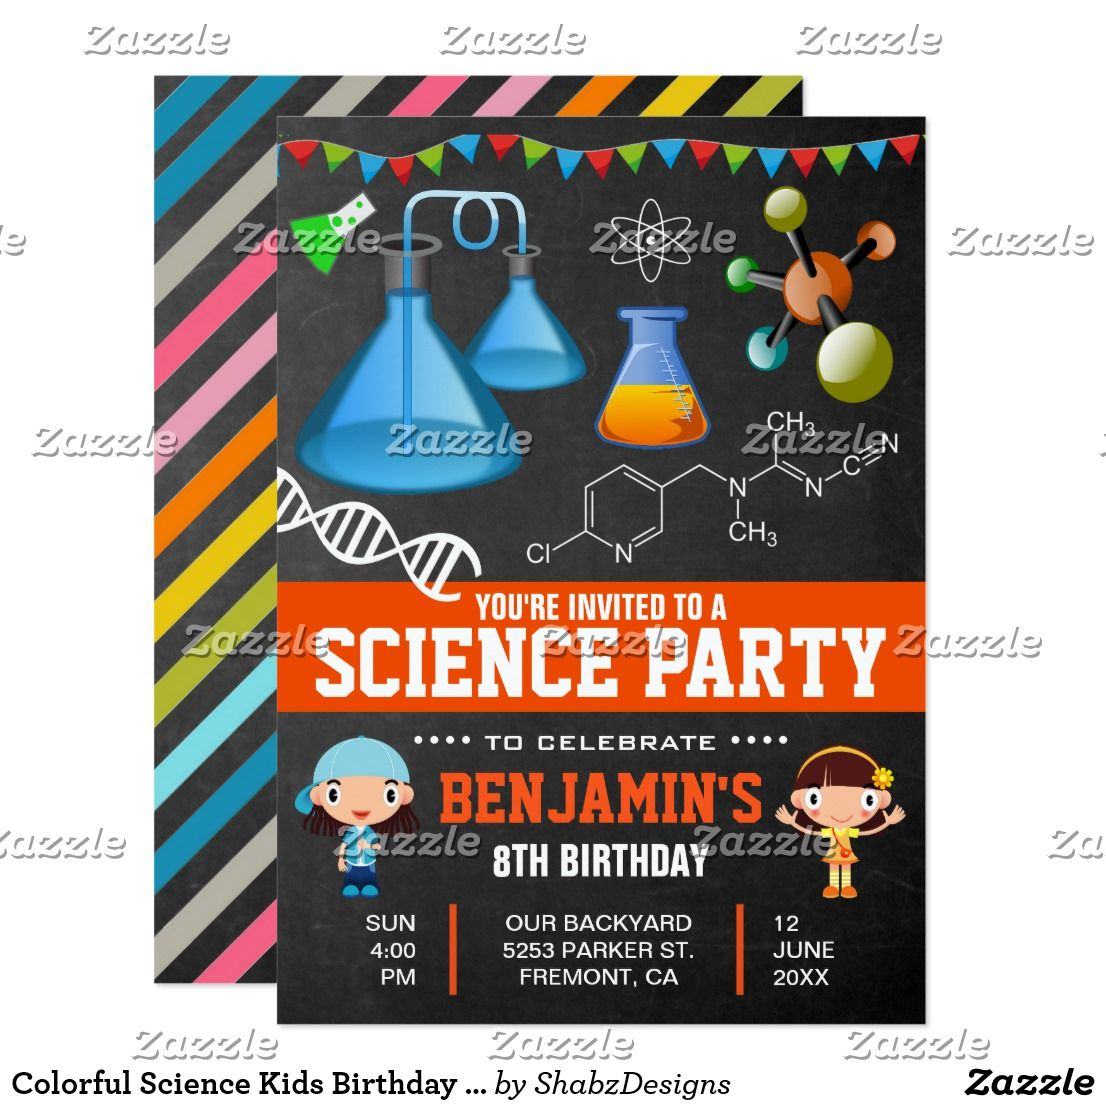 Colorful Science Kids Birthday Party Invitation Amaze your guests ...